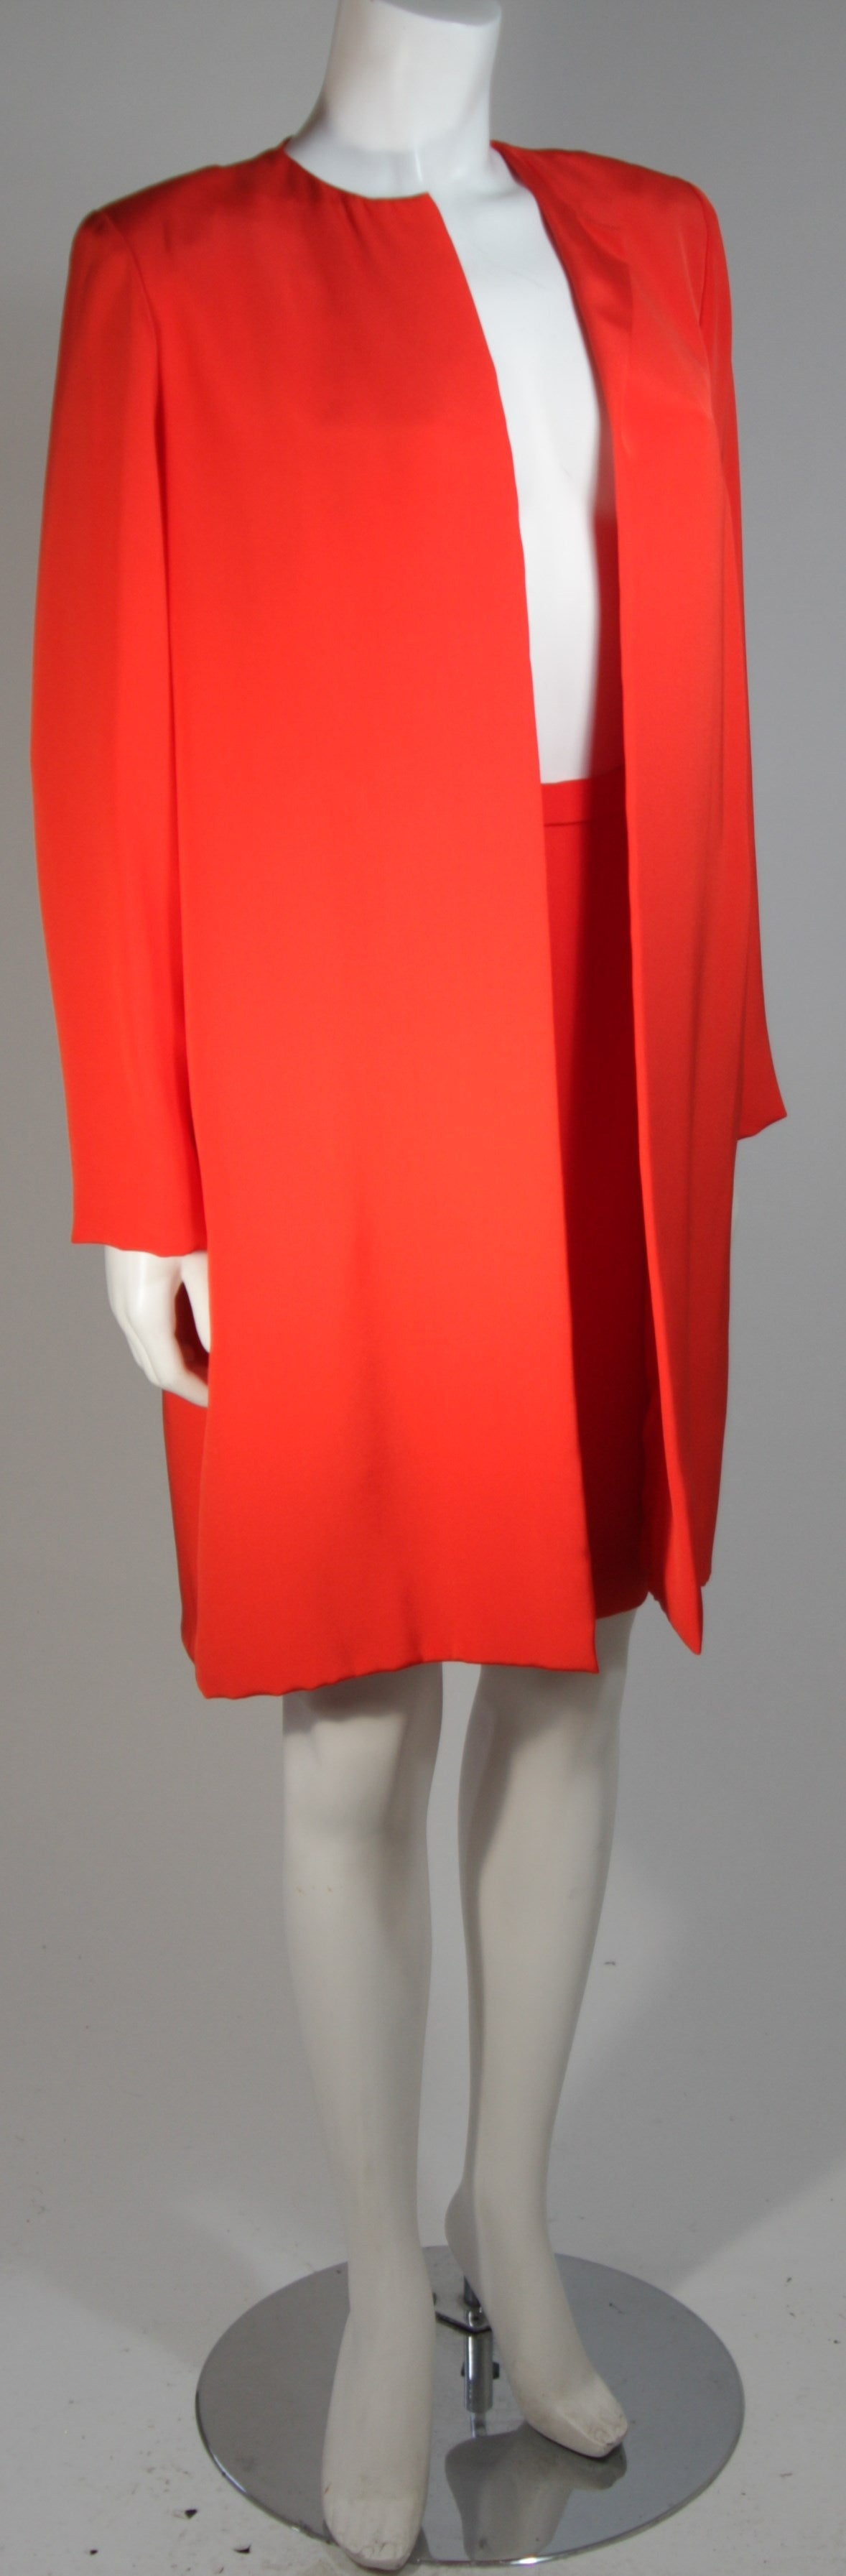 Red Vicky Tiel Orange Silk Skirt Suit Size Small For Sale